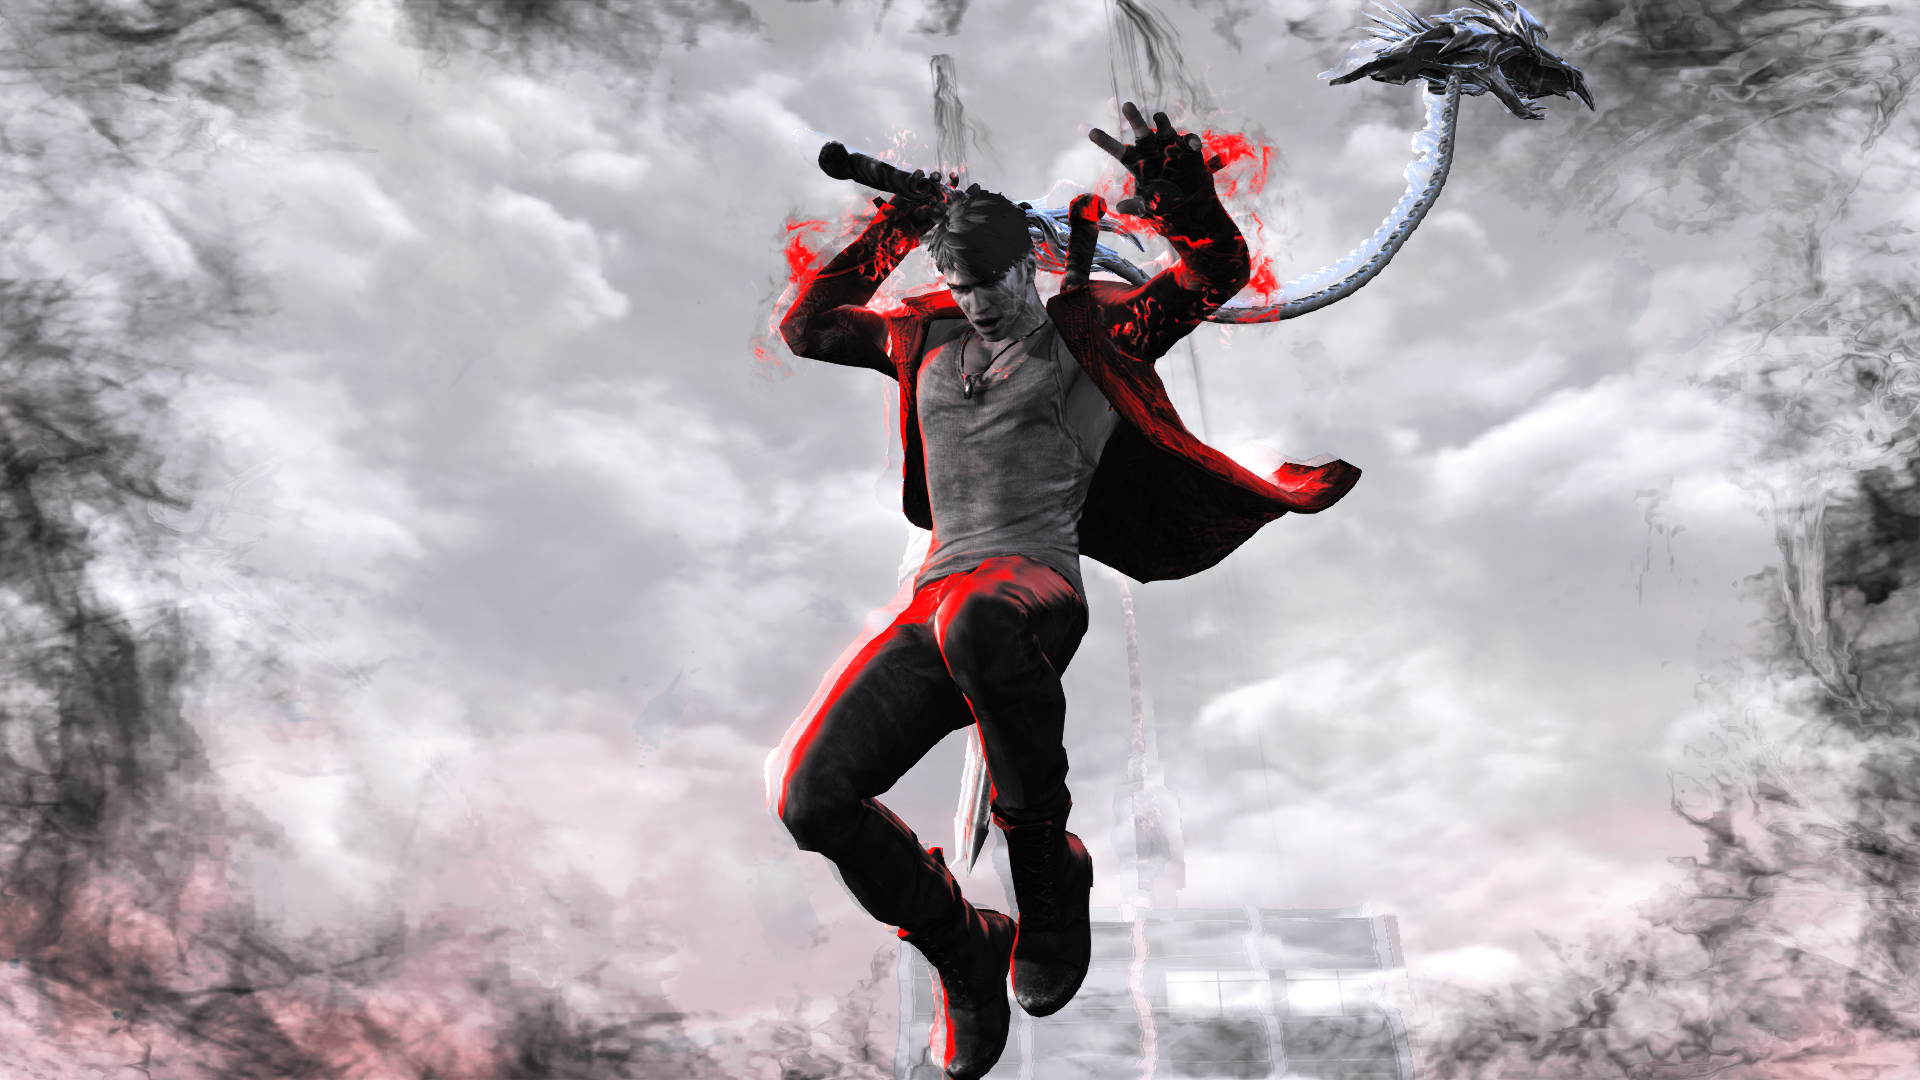 Img2732g 19201080 dante dmc 5 pinterest explore devil may cry 4 ps4 and more voltagebd Gallery